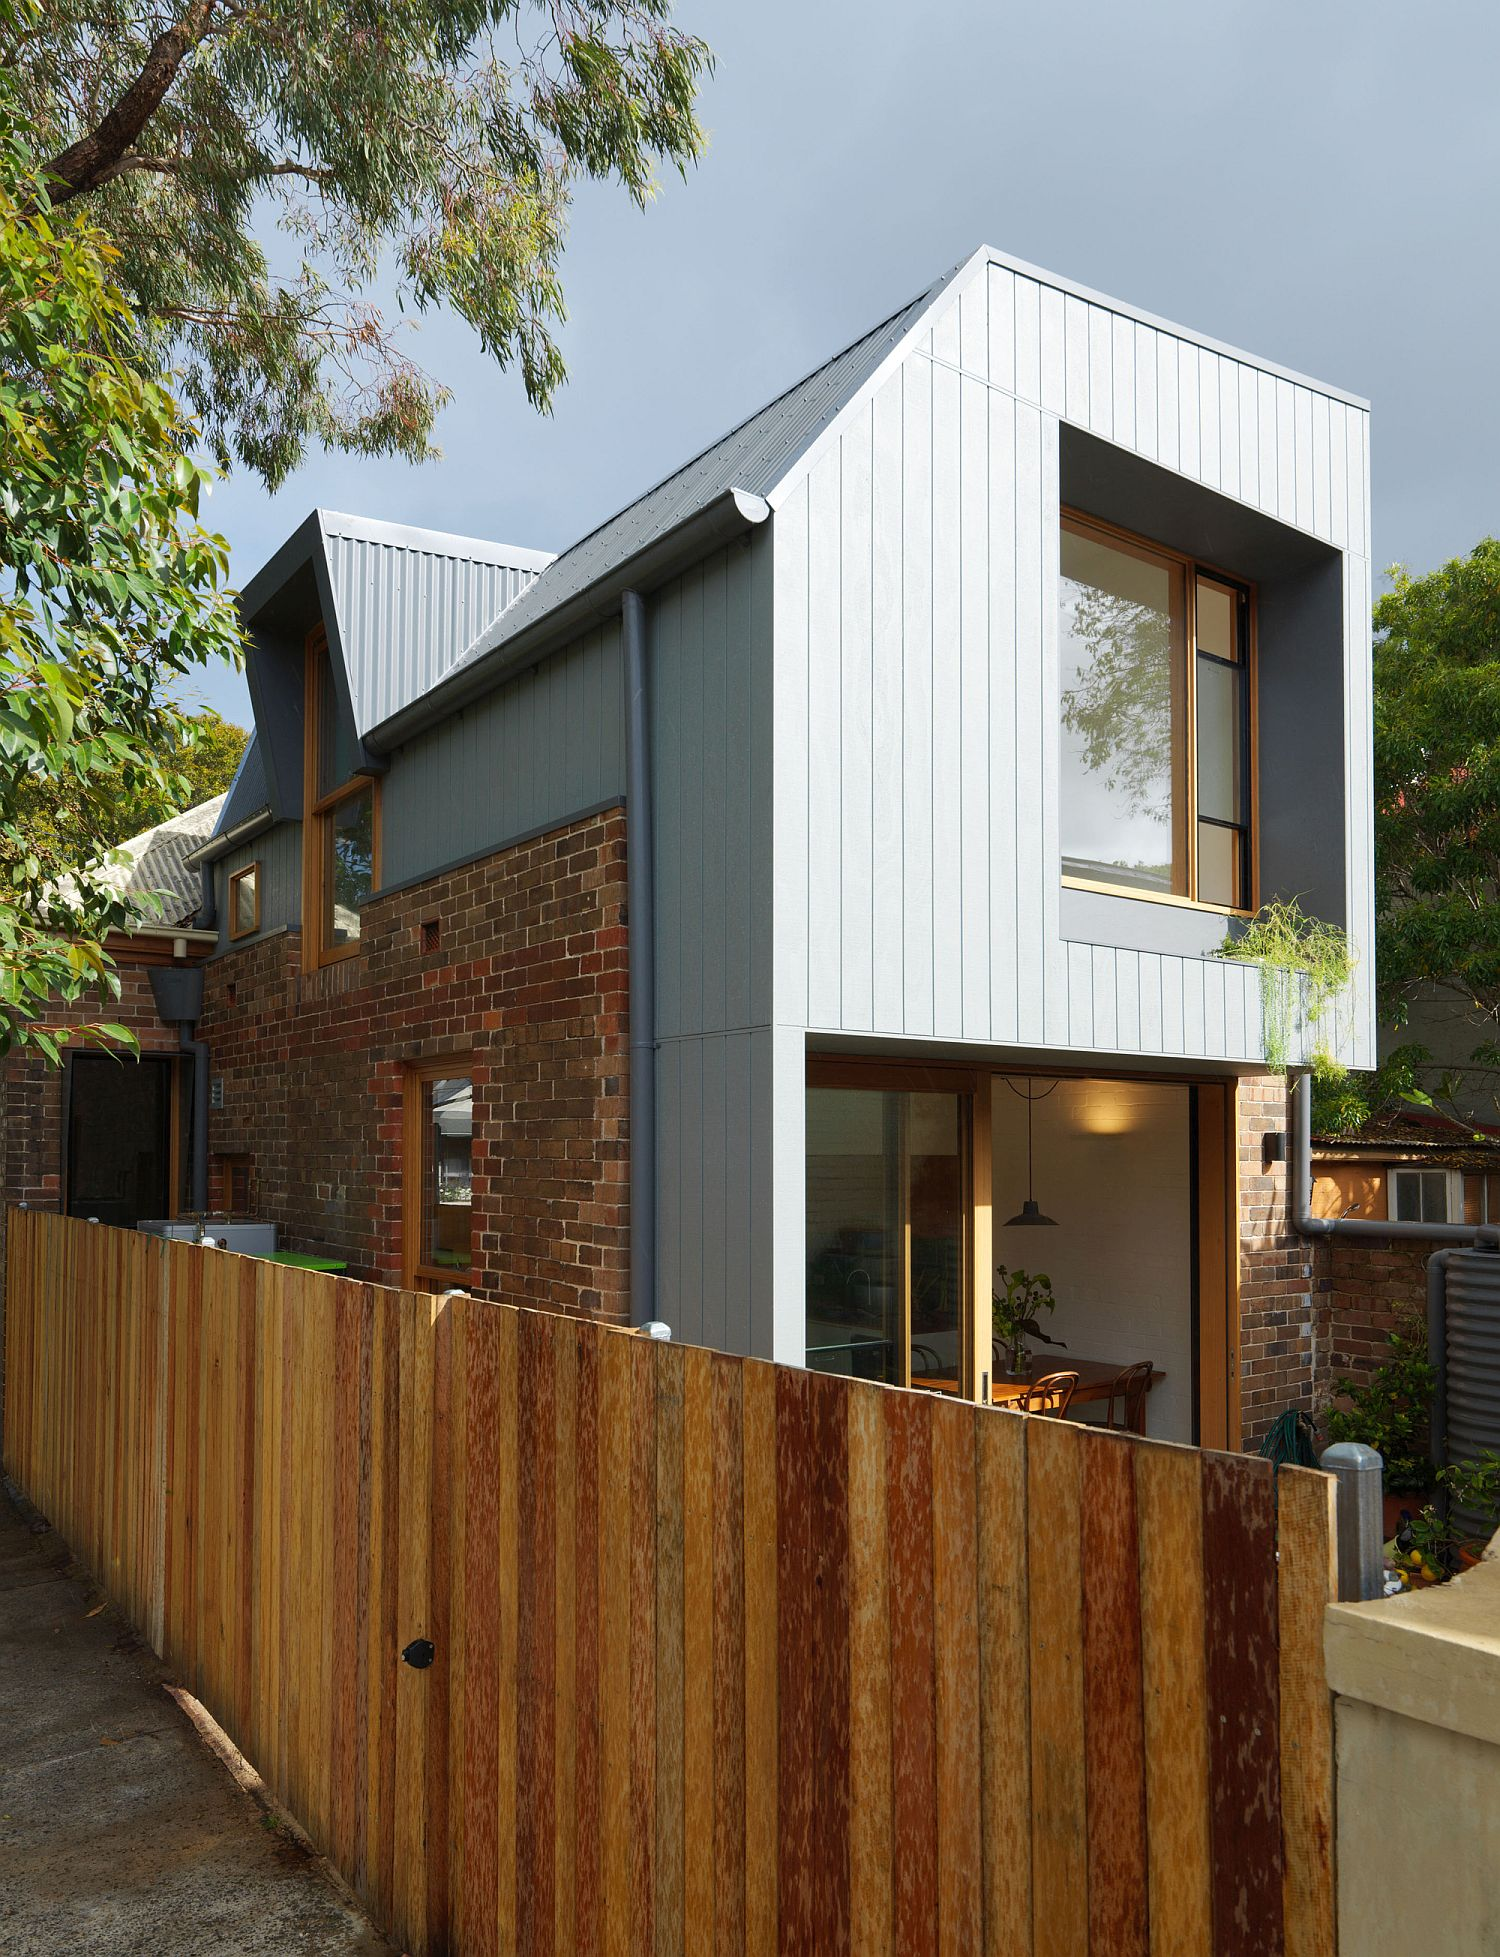 Revamped home in inner suburbs of Sydney with a rear extension